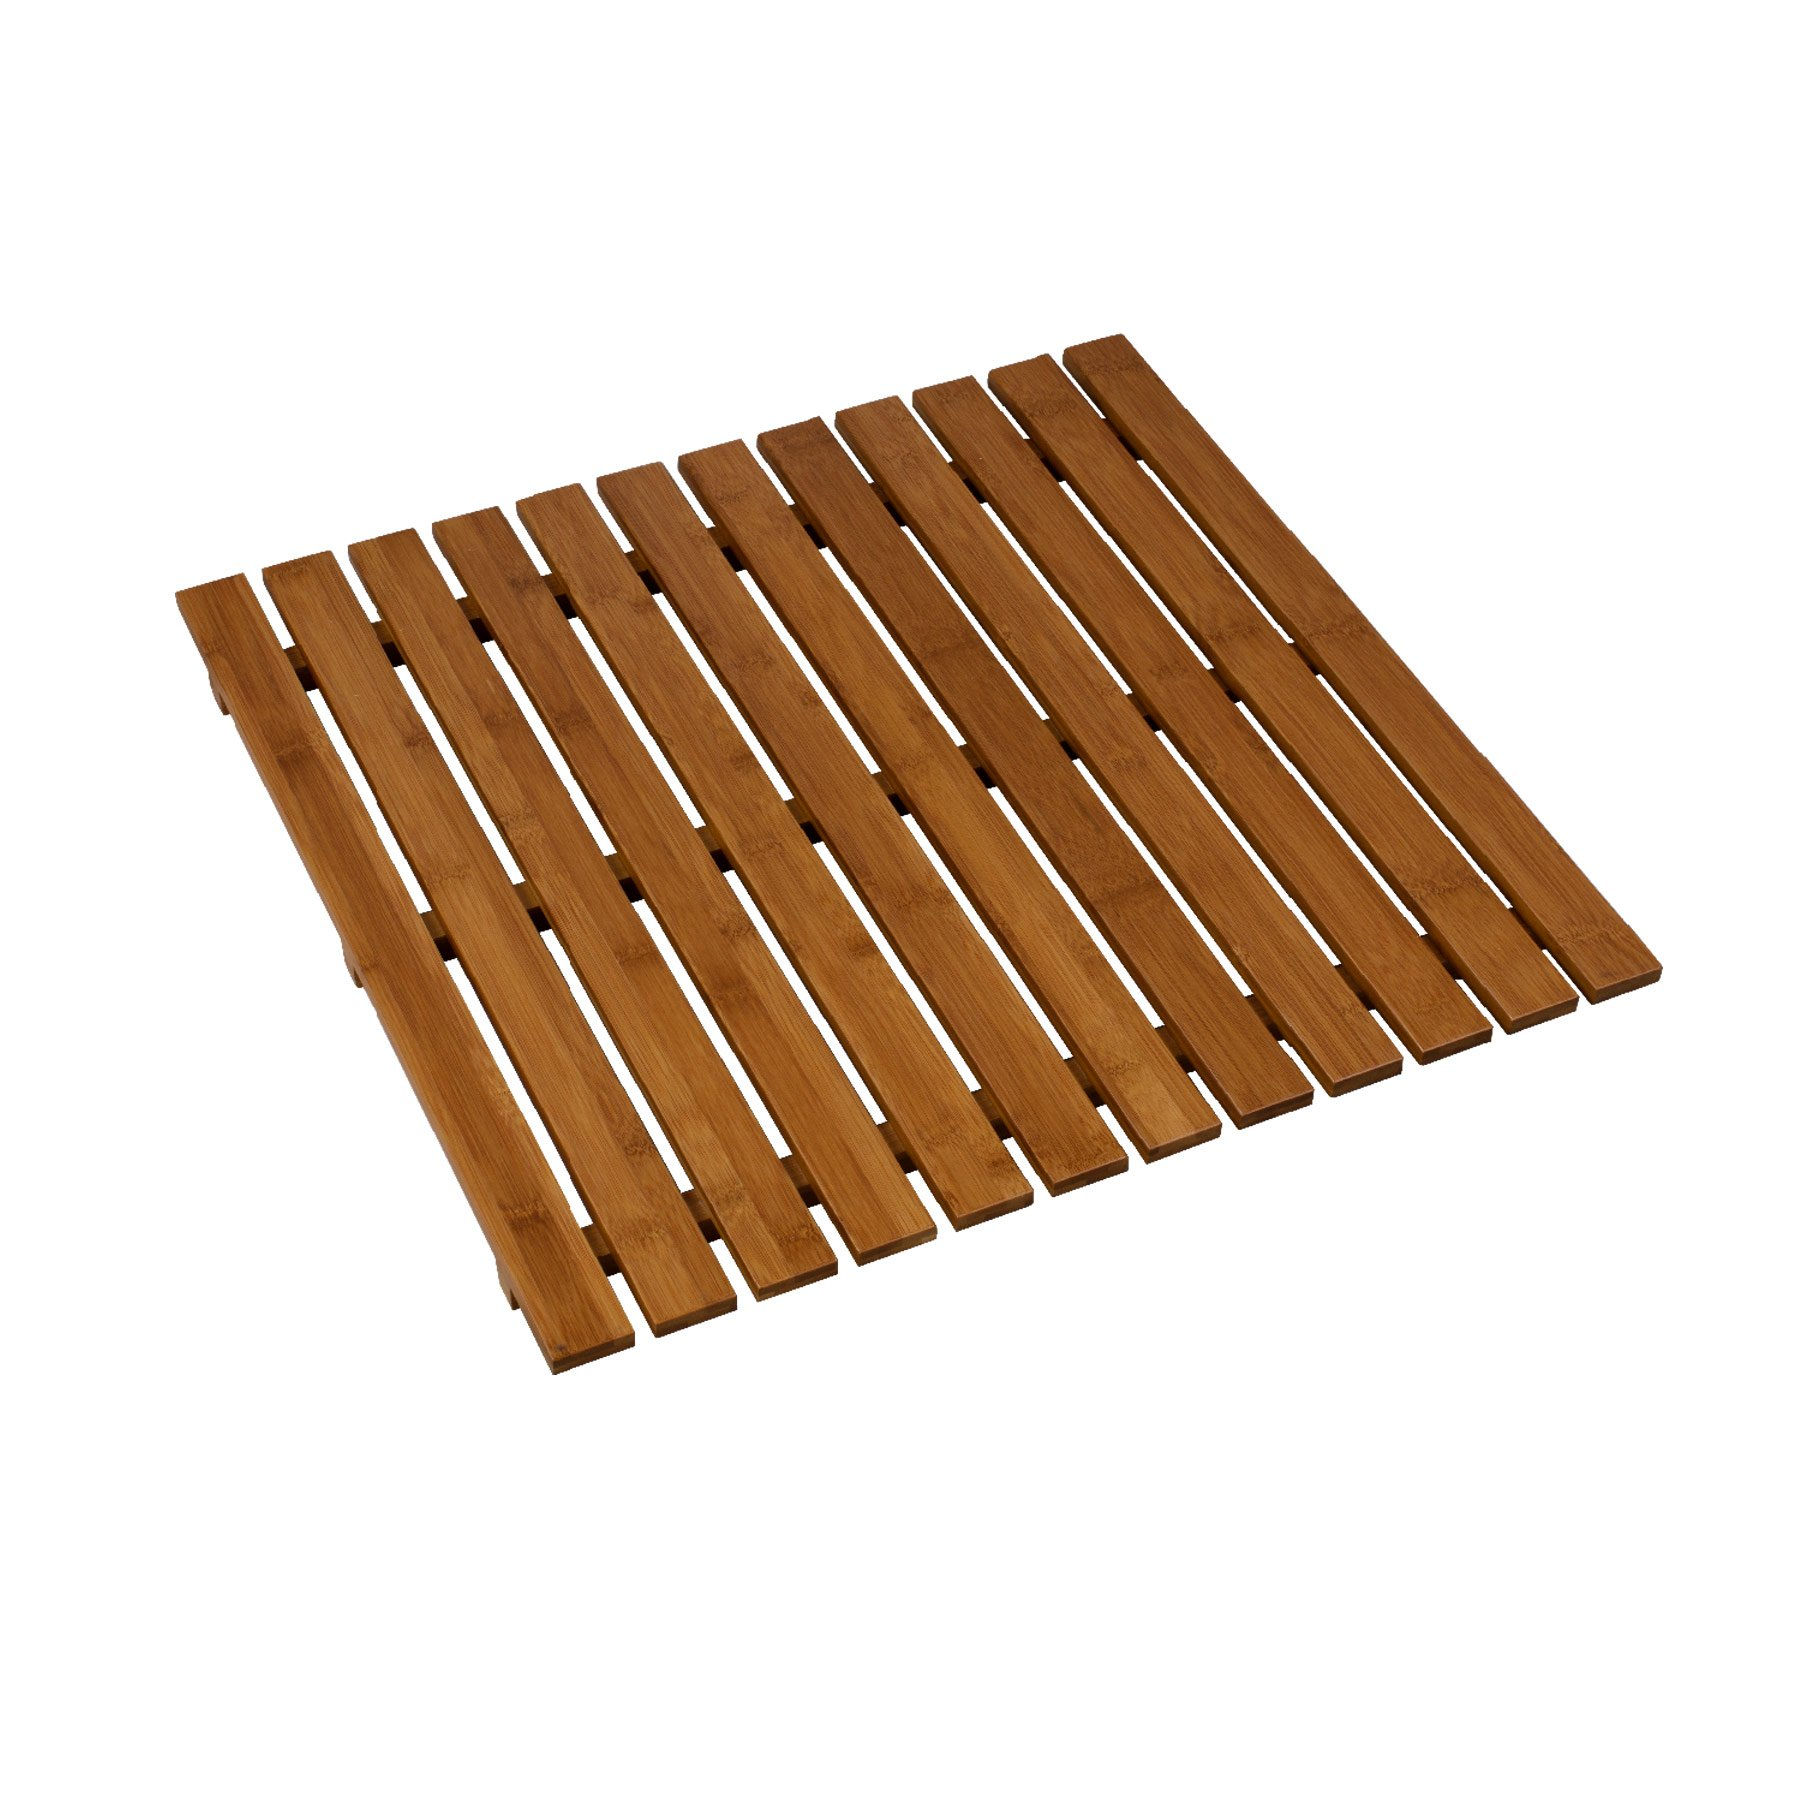 MAYKKE Griffith Large 24'' x 24'' Square Bamboo Bath & Sauna Spa Mat | Slatted Wooden Waterproof Bathroom Accessory Floor Pool Deck, Bathtub, and Shower Stall Mat | NHA1160101